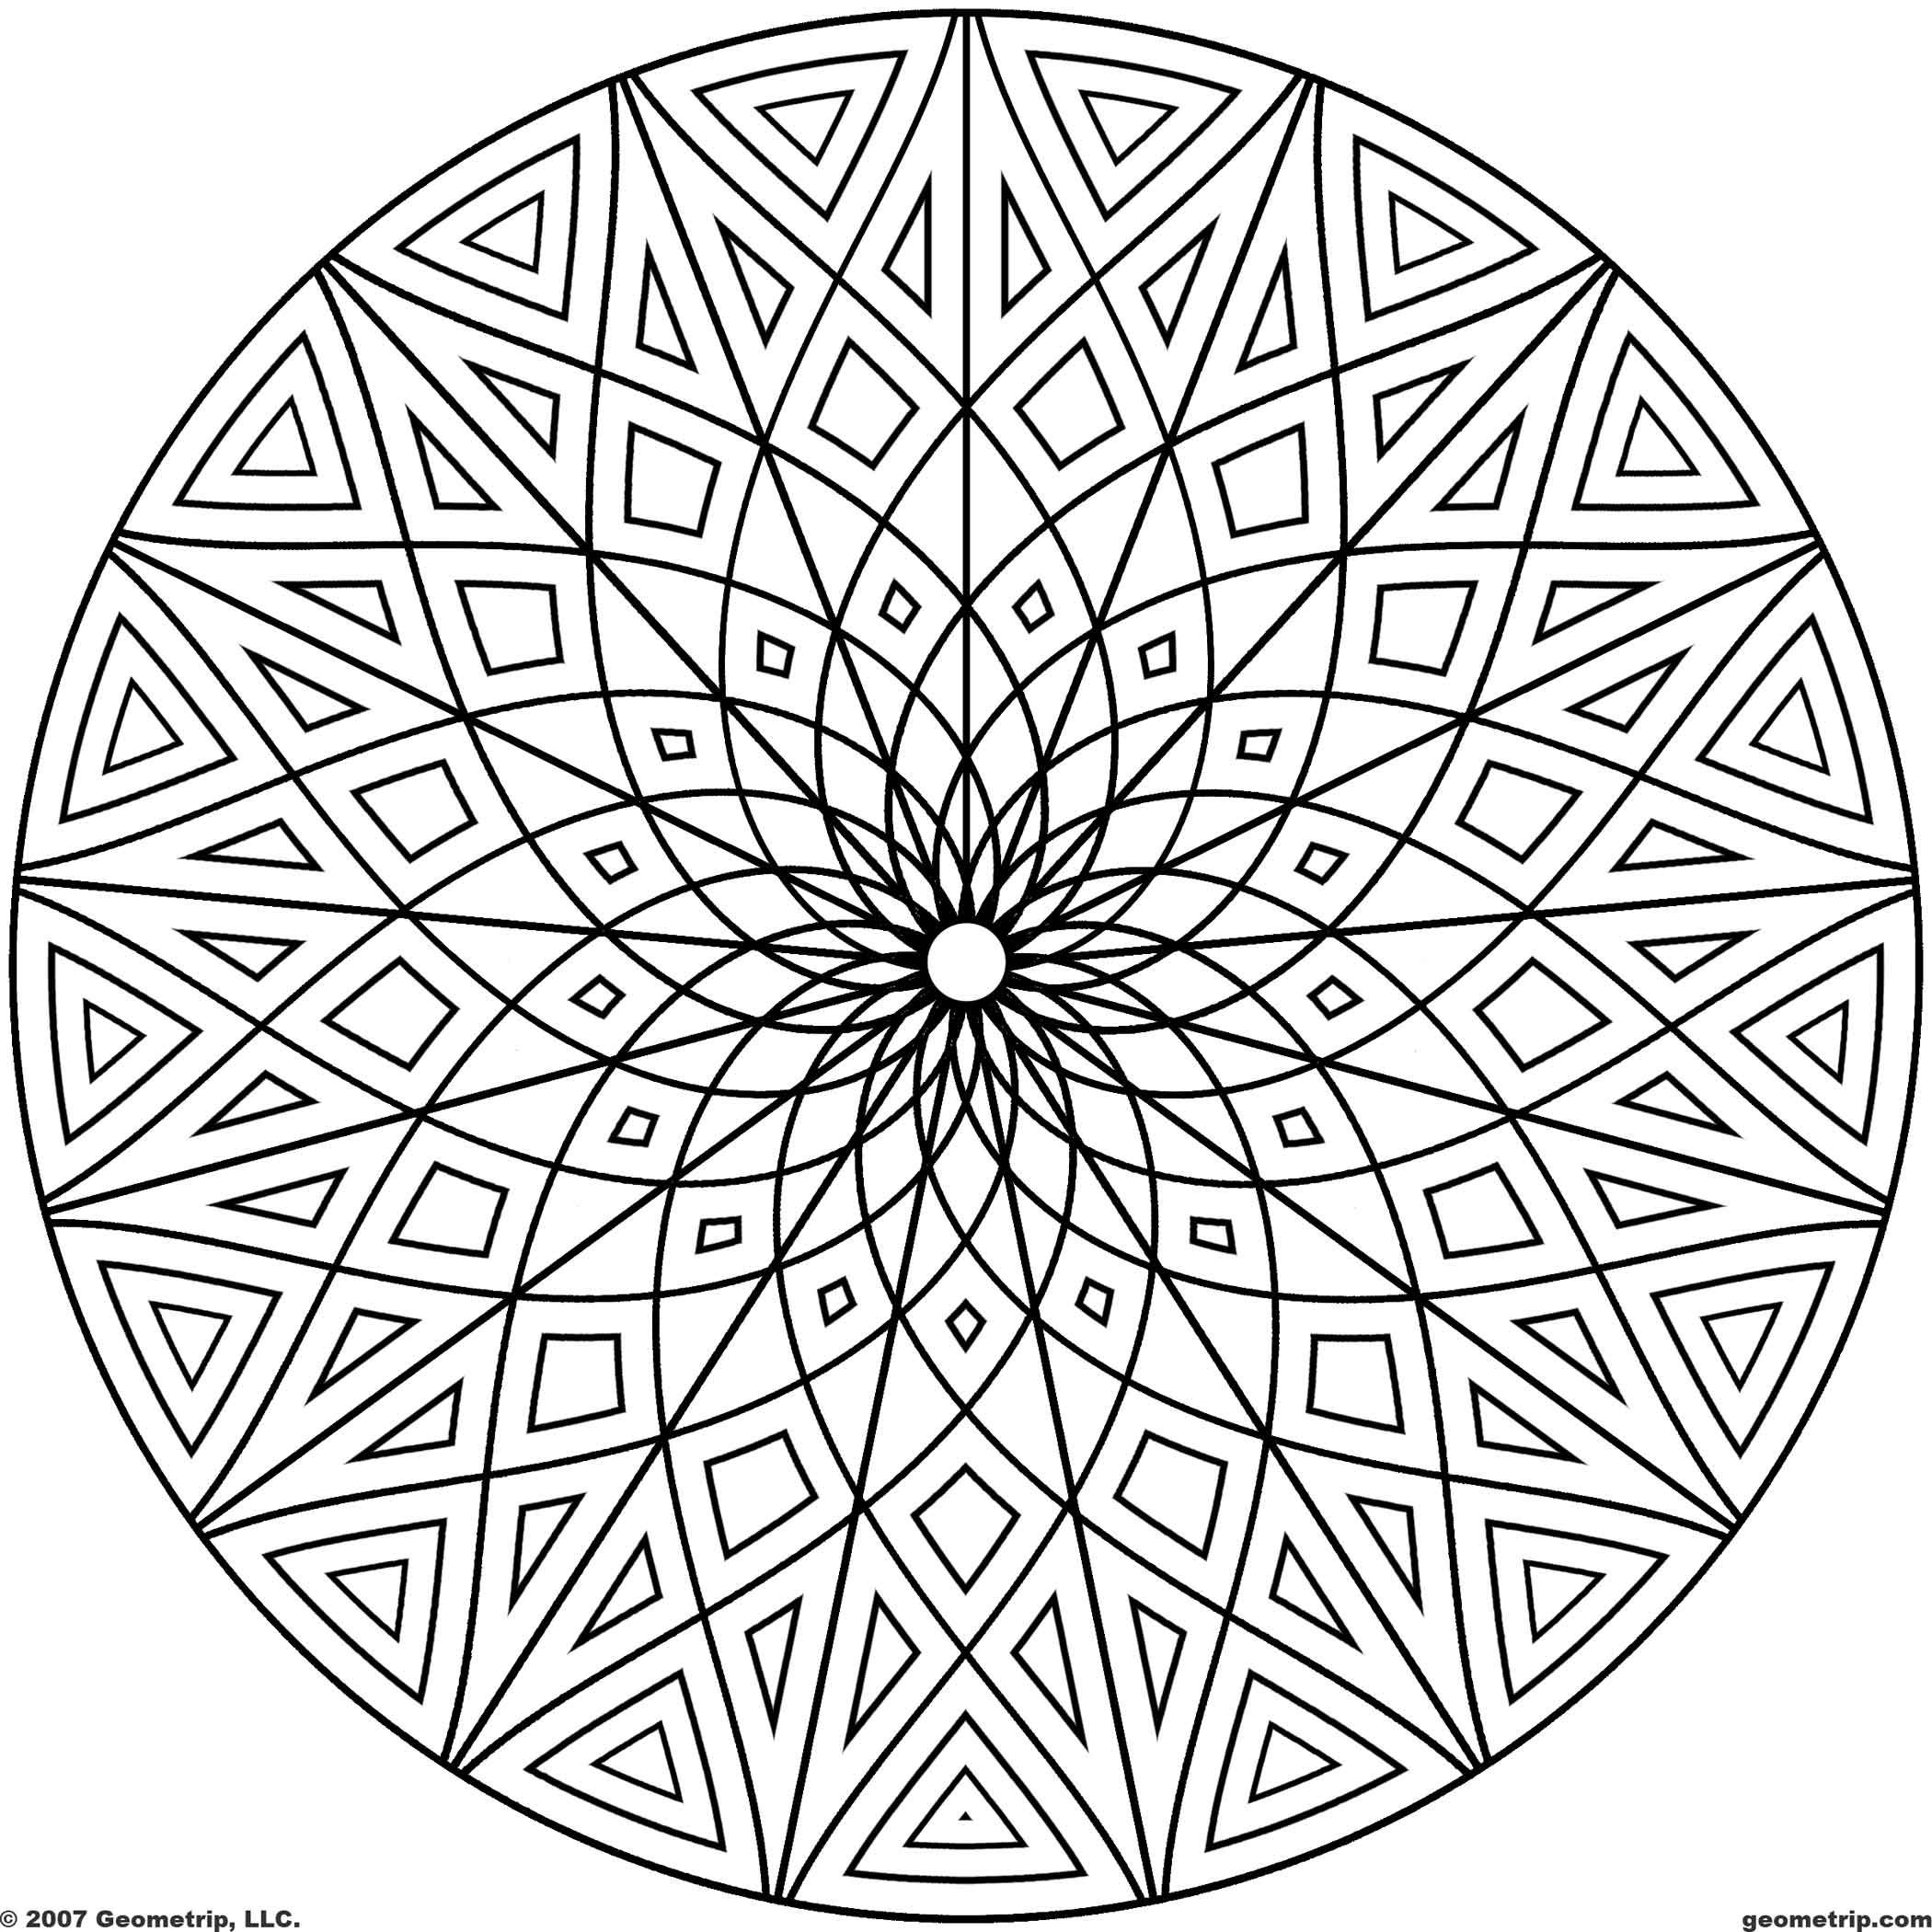 Geometrip Circles Set2 Sym17 Jpg 2 100 2 100 Pixels Geometric Coloring Pages Cool Coloring Pages Mandala Coloring Pages